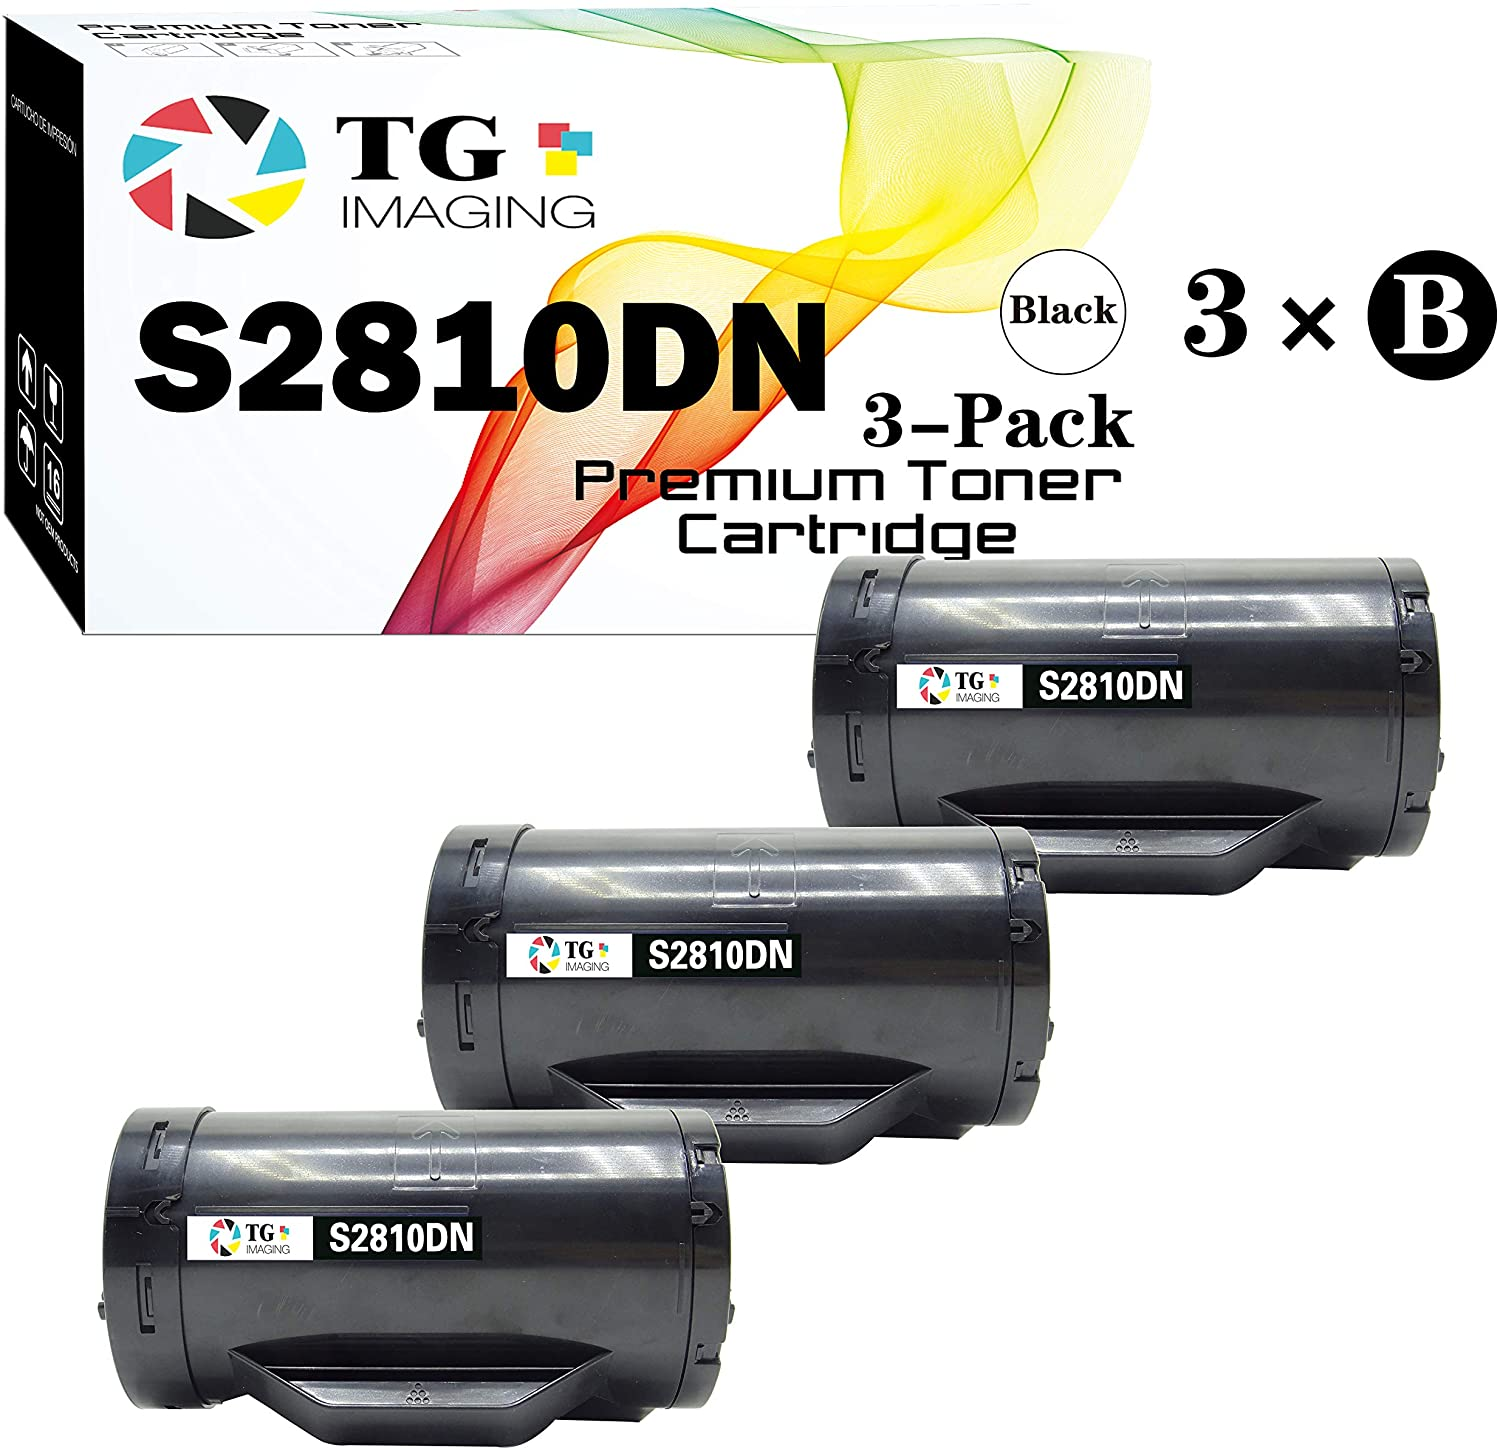 (3-Pack) TG Imaging Compatible Dell S2810 Toner Cartridge High Yield (6000 Pages) Replacement for H815DW S2810DN S2815DN Printer